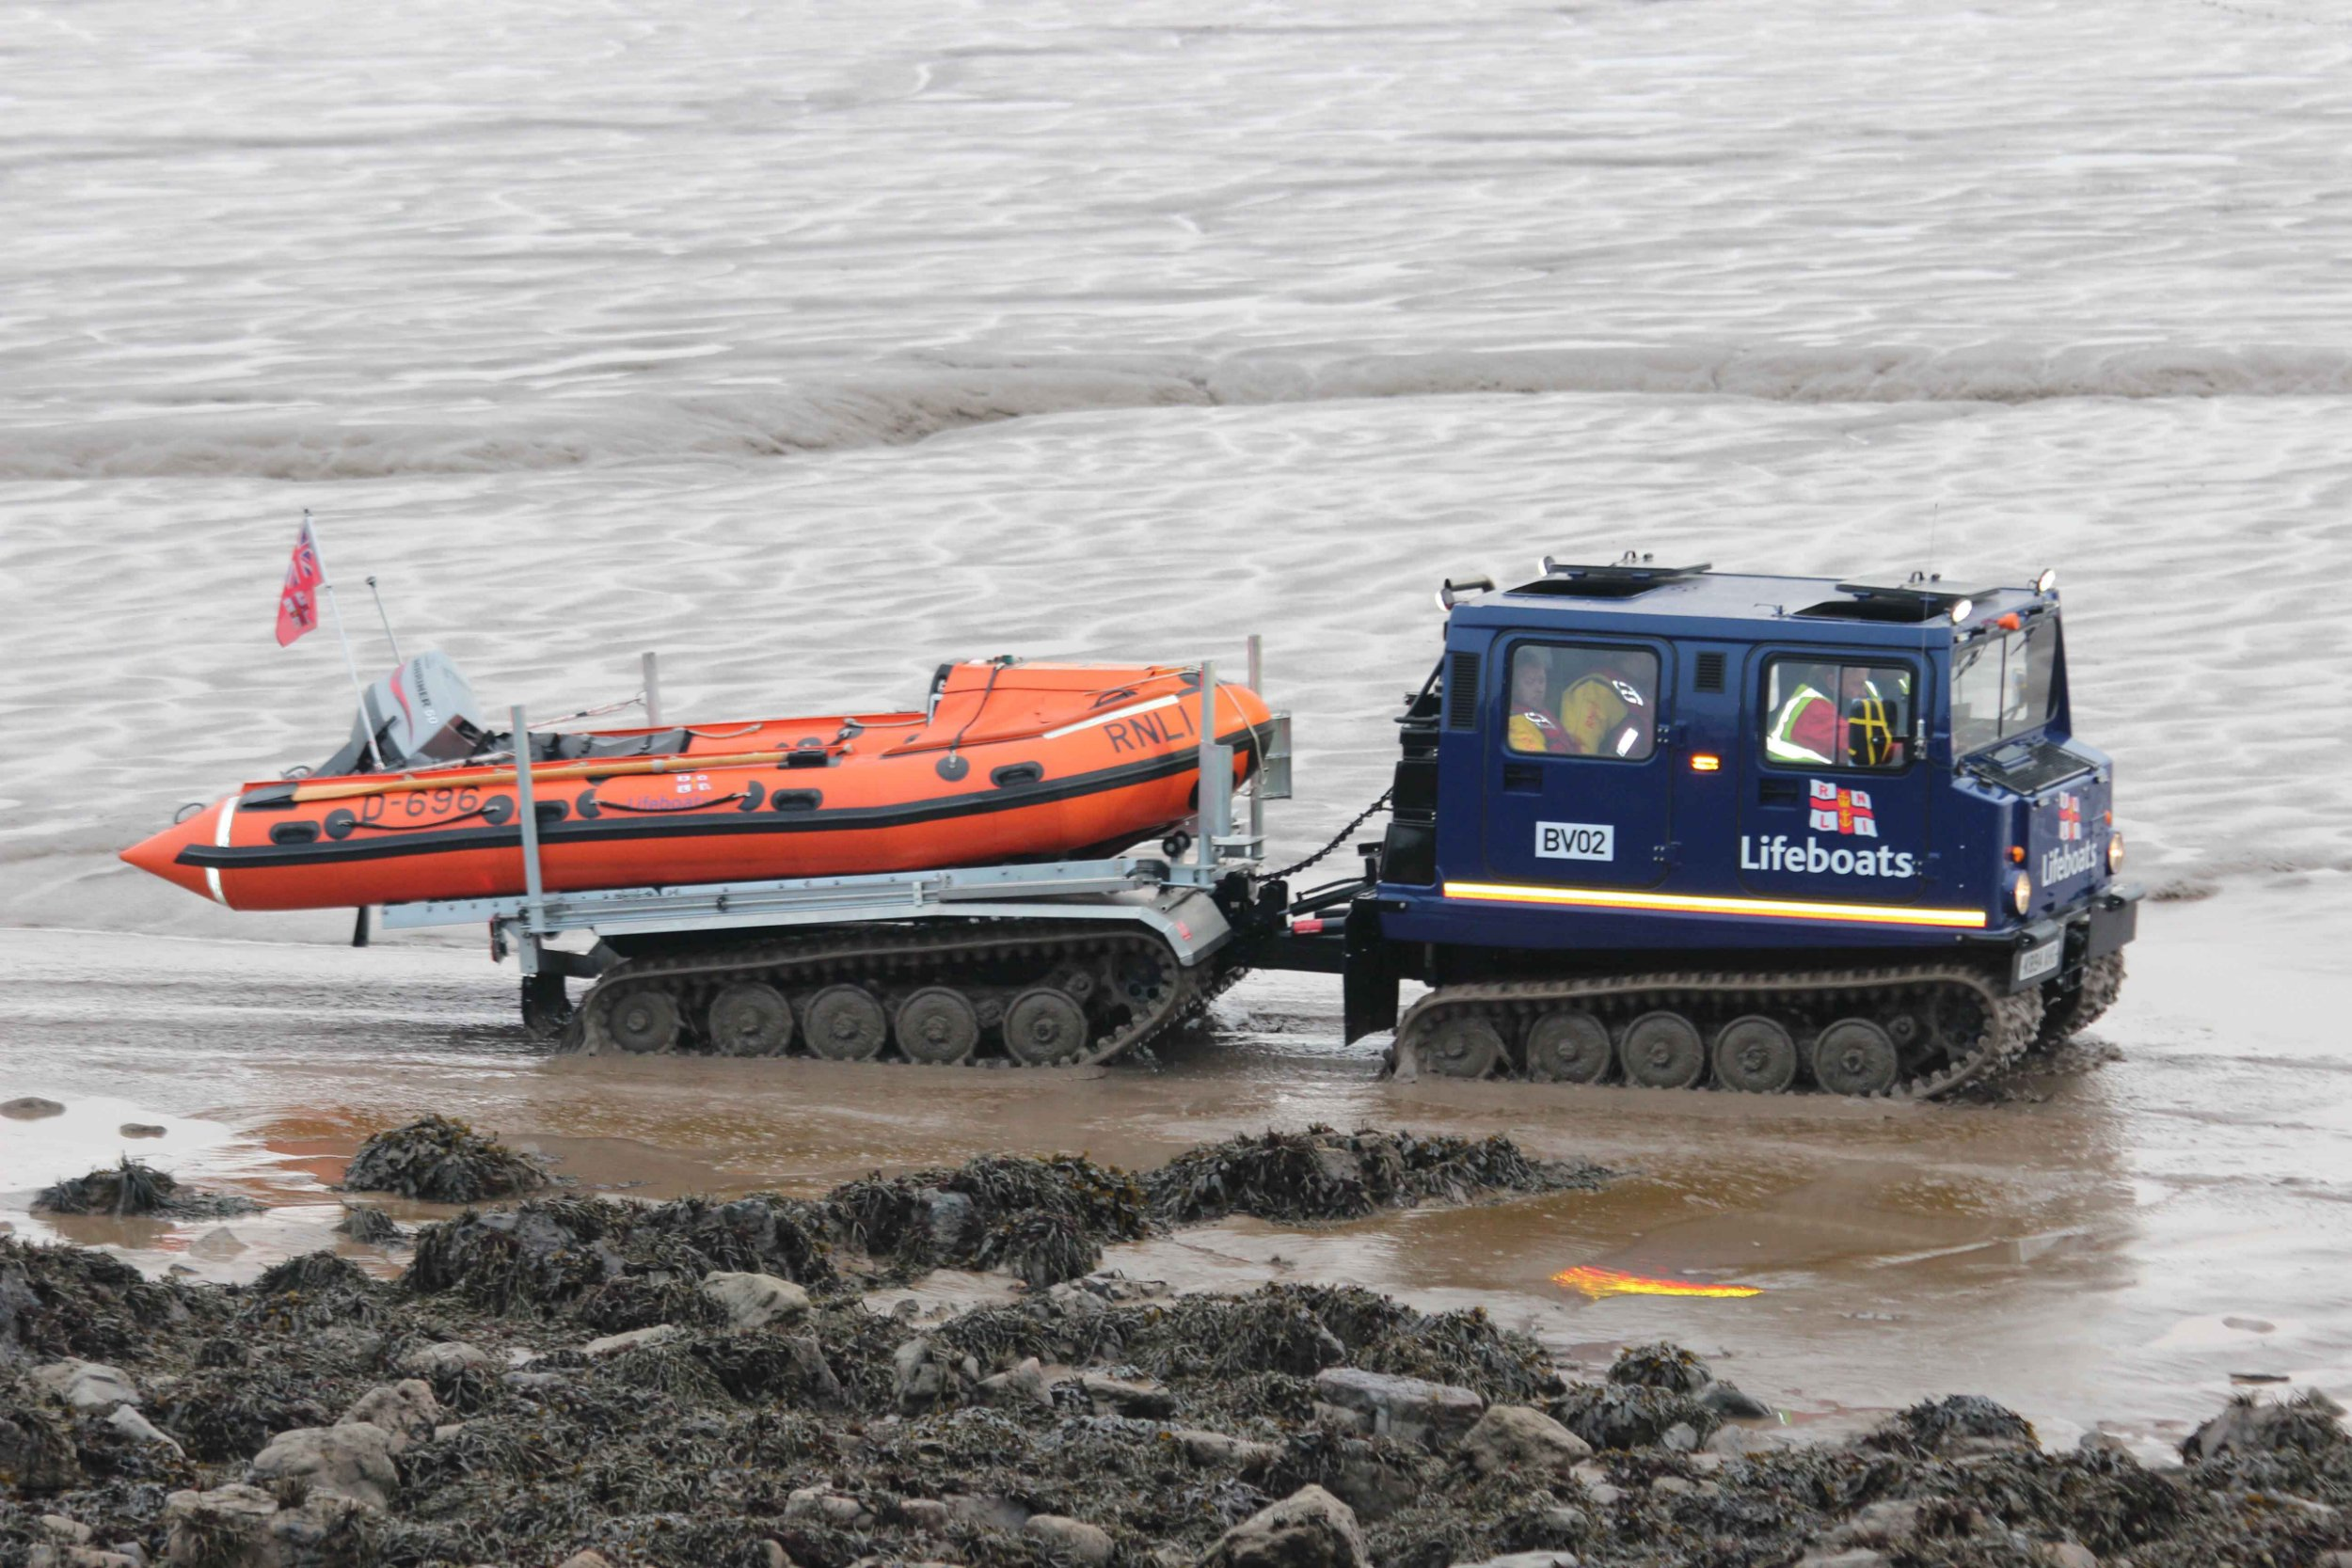 """A lifeboat crew was scrambled to rescue a group of fool-hardy Pokemon """"trainers"""" who became stranded on an island last night. See SWNS story SWRESCUE; Milford Haven Coastguard tasked Weston Lifeboat to people cut off by the tide on Birnbeck Island. While on the waters edge the Lifeboats stood down after seeing the people crossing the walkway heading back to the the shore. The people had put their lives in danger attempting to catch Pokemon."""